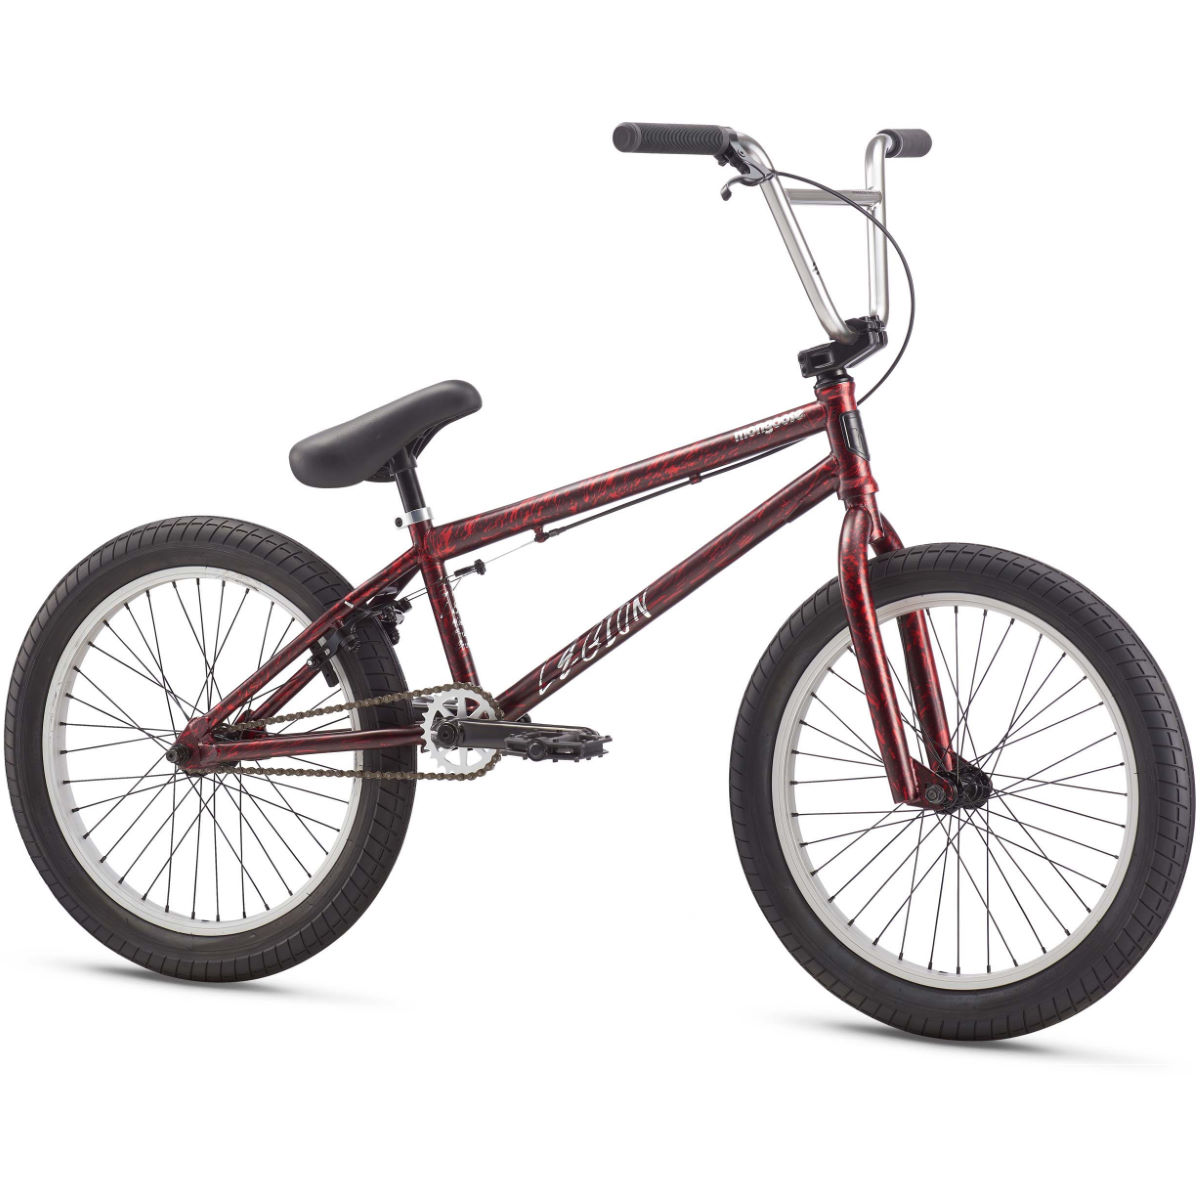 Bmx bikes shop for cheap cycling and save online for Bmx store